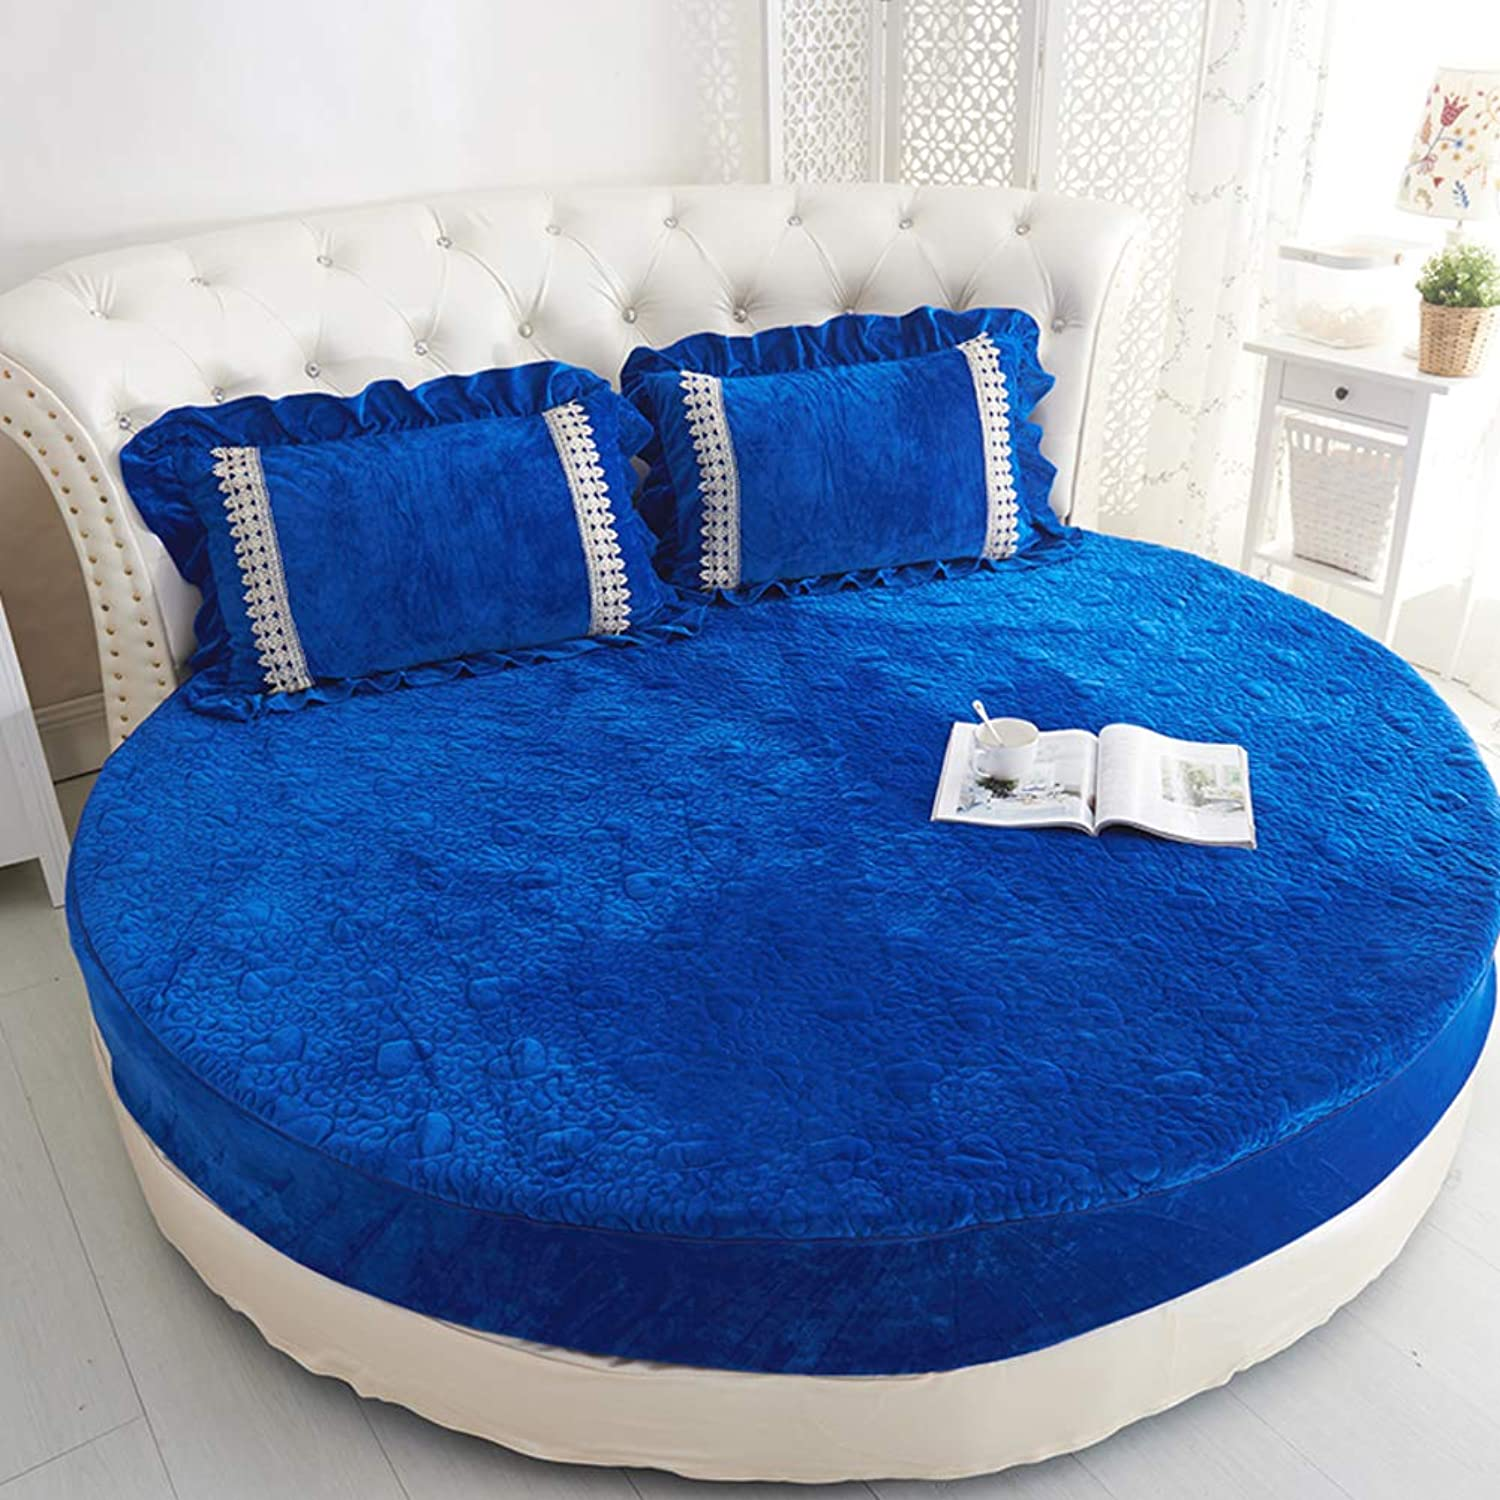 Plush Round Bed Fitted Sheets,Thickened Quilted Bed Cover Fully Elastic All Around Bedspread Soft Skin-Friendly Mattress Anti-Slip Cover Washable-L diameter220cm(87inch) Version A